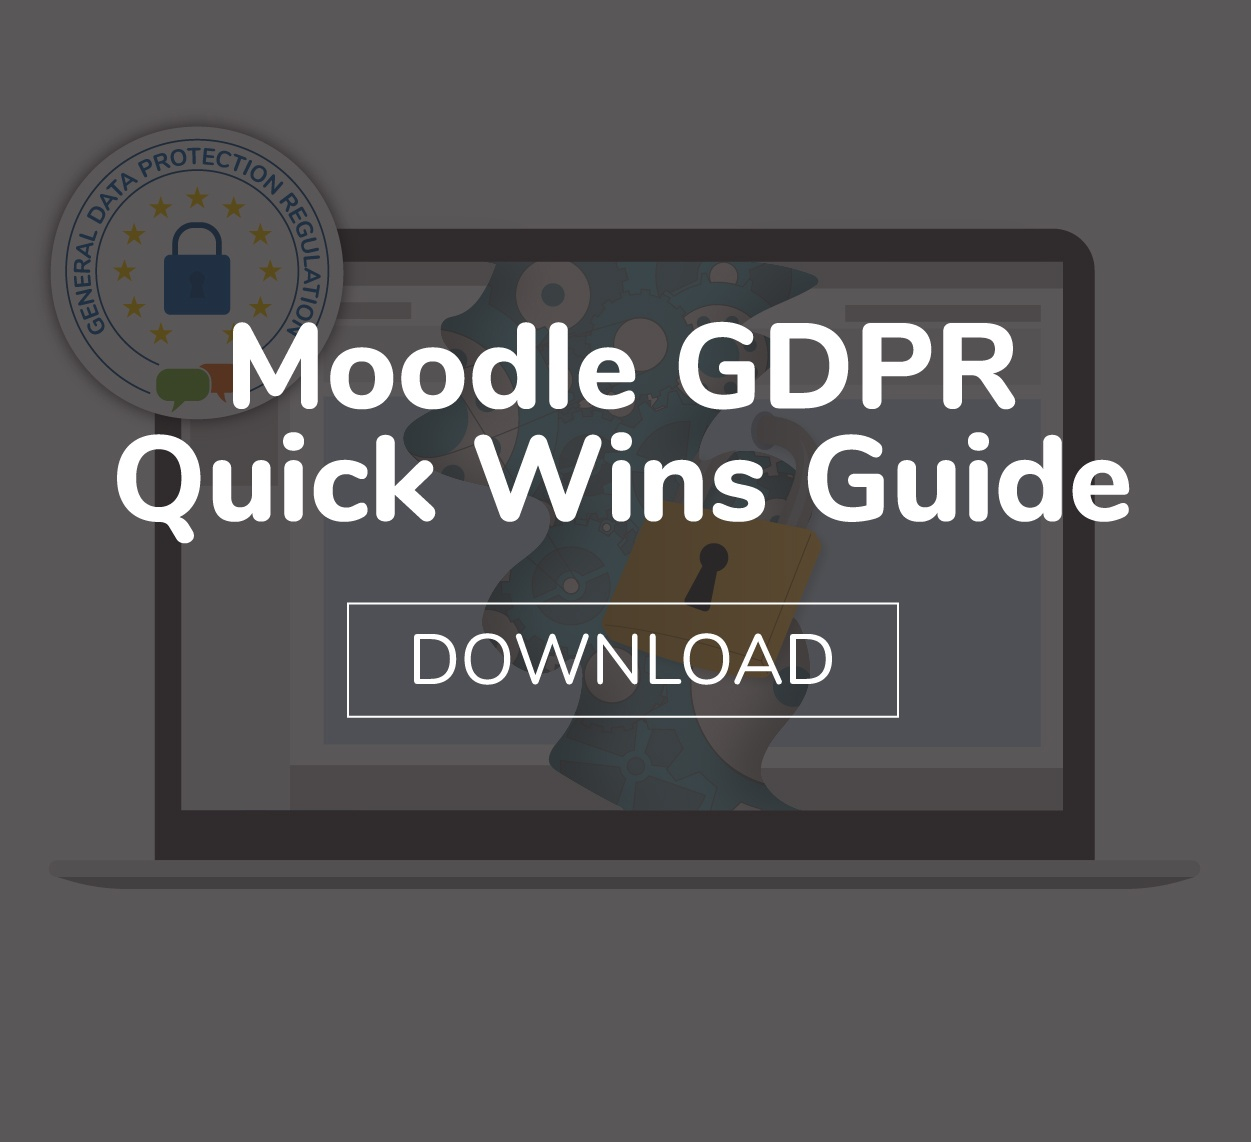 Moodle GDPR Quick Wins Guide